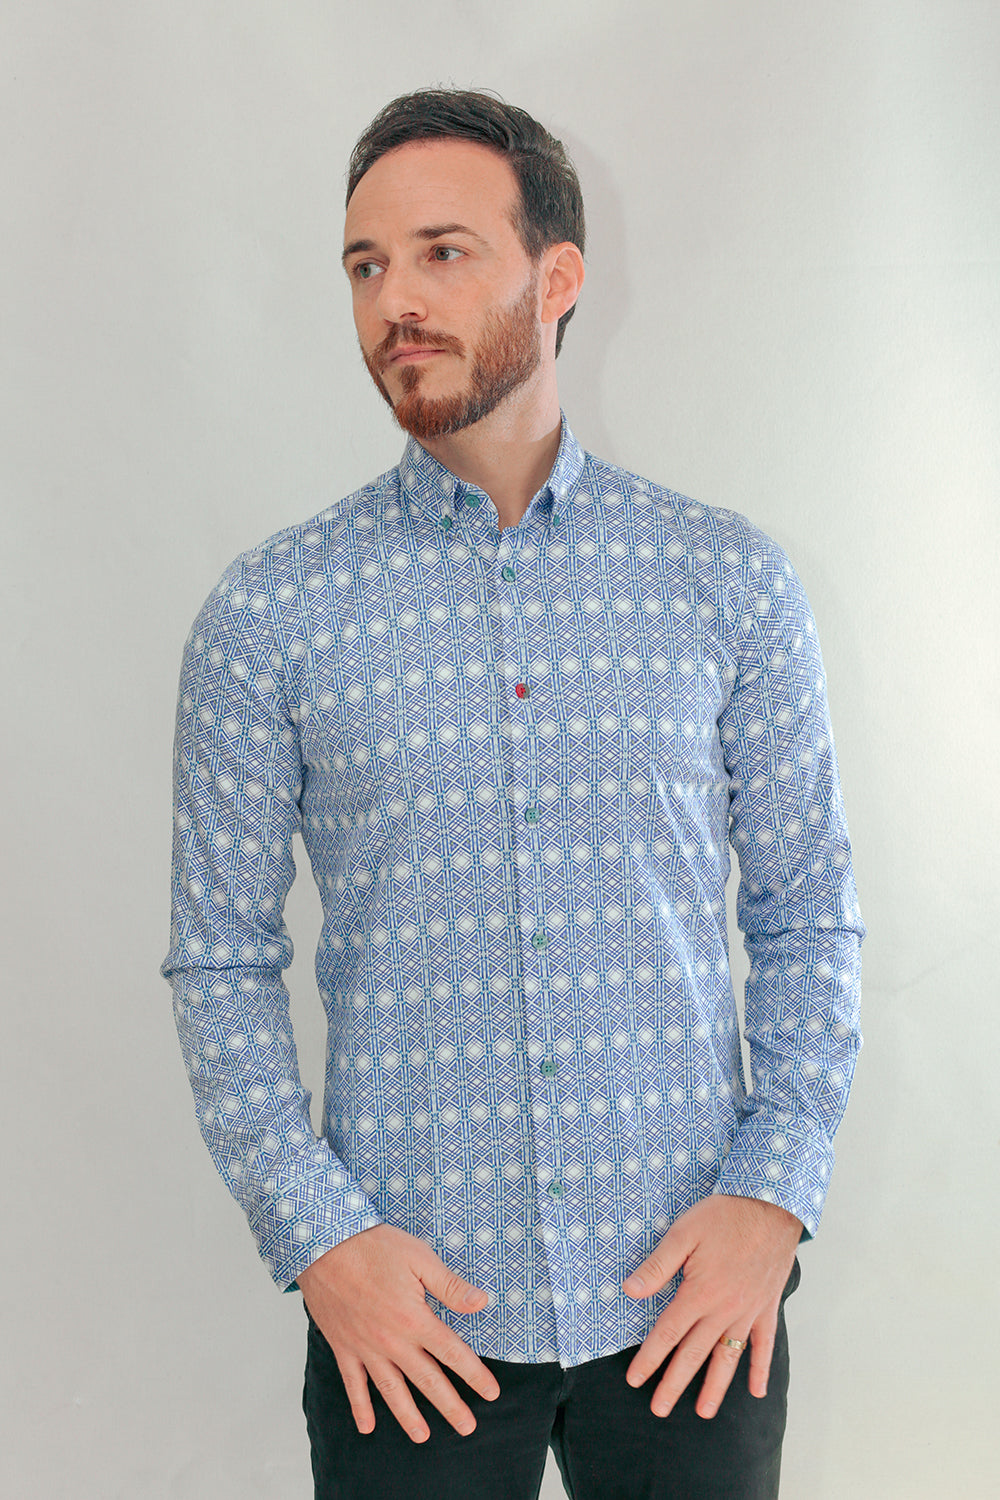 Valencia Slim Fit Dress Shirts In White/Blue In Point Collar